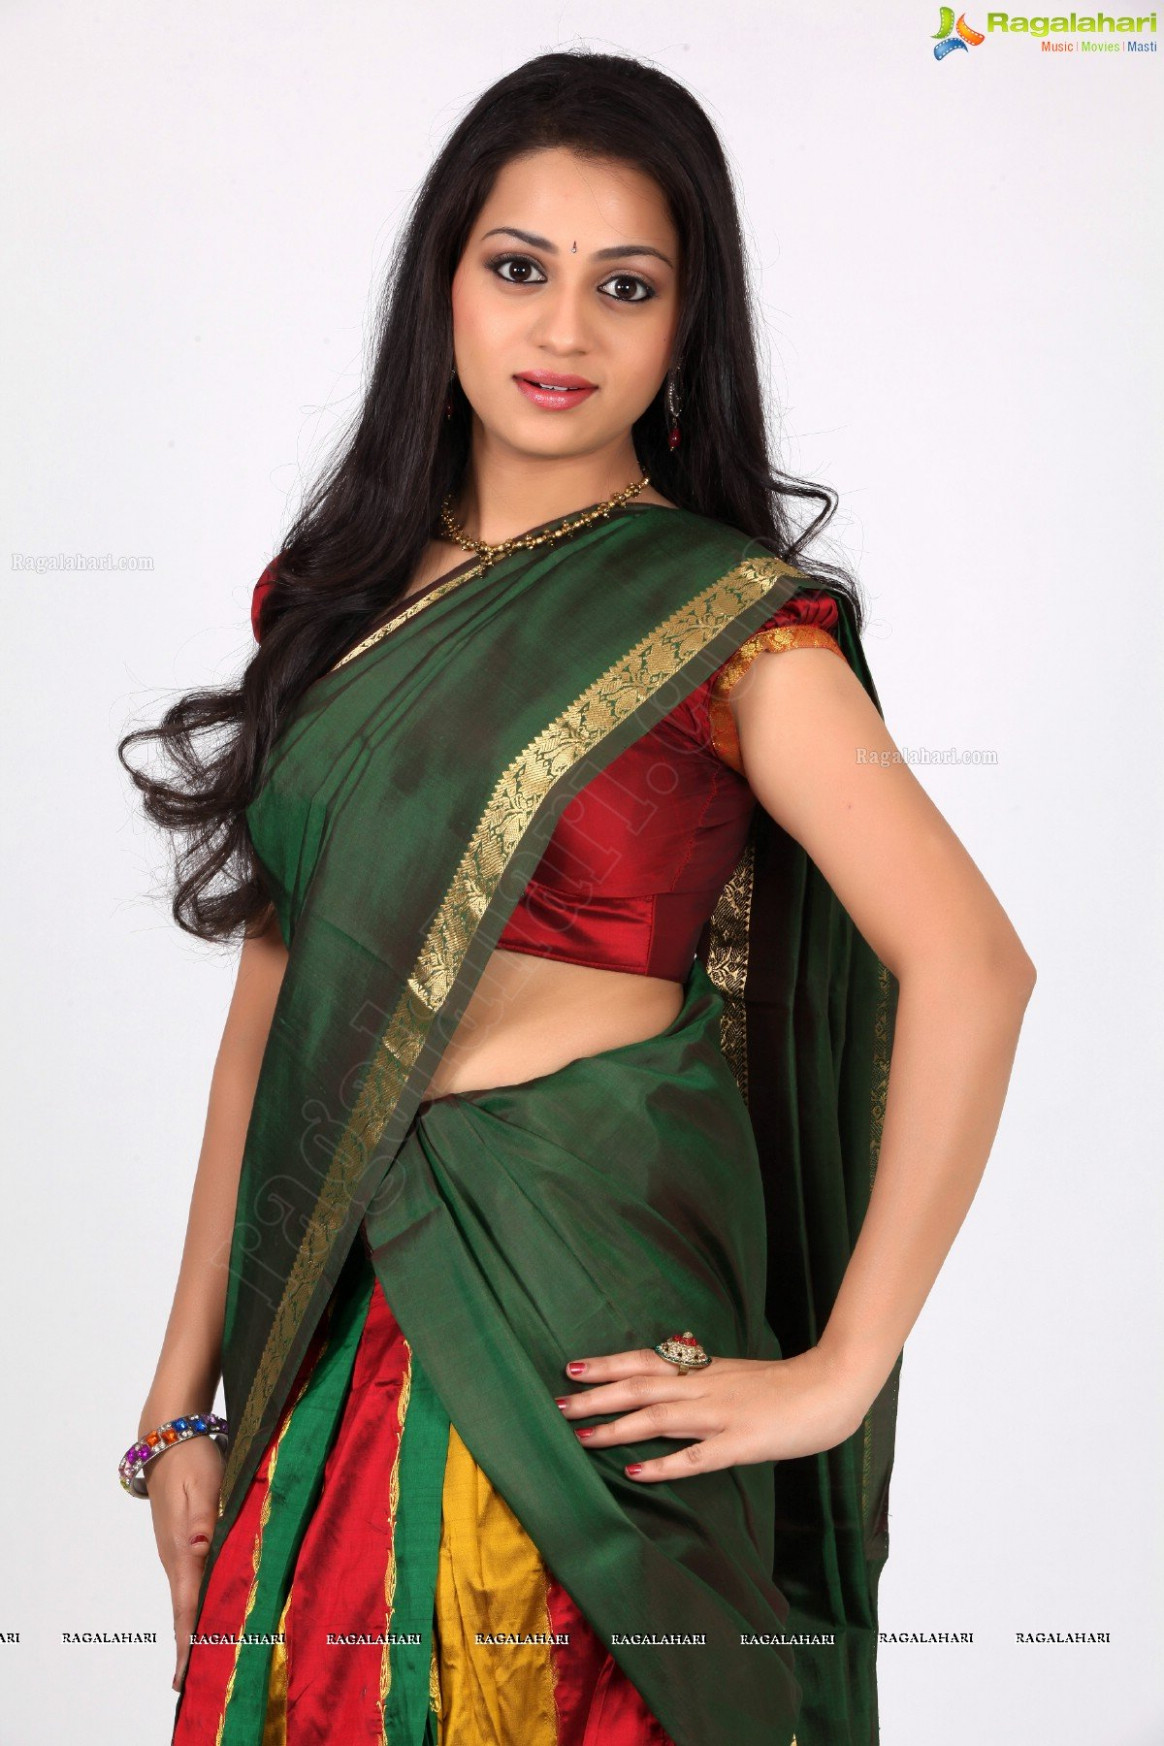 Reshma Rathore (Exclusive) Image -in-half-saree-ragalahari